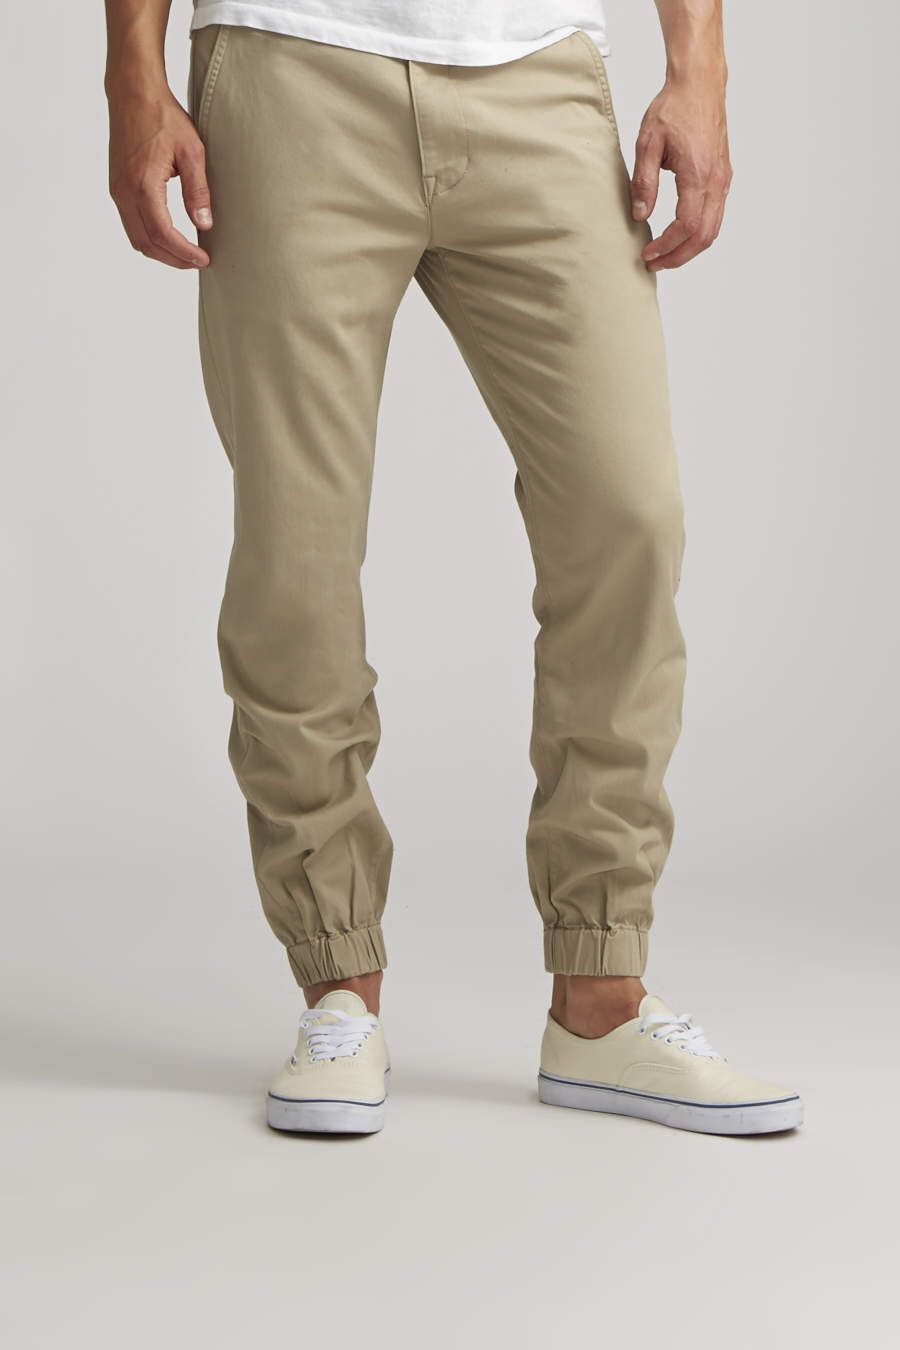 6a84867672 Chino Jogger - Levi's - Joggers : JackThreads. Find this Pin and more on  Stuff to Buy ...